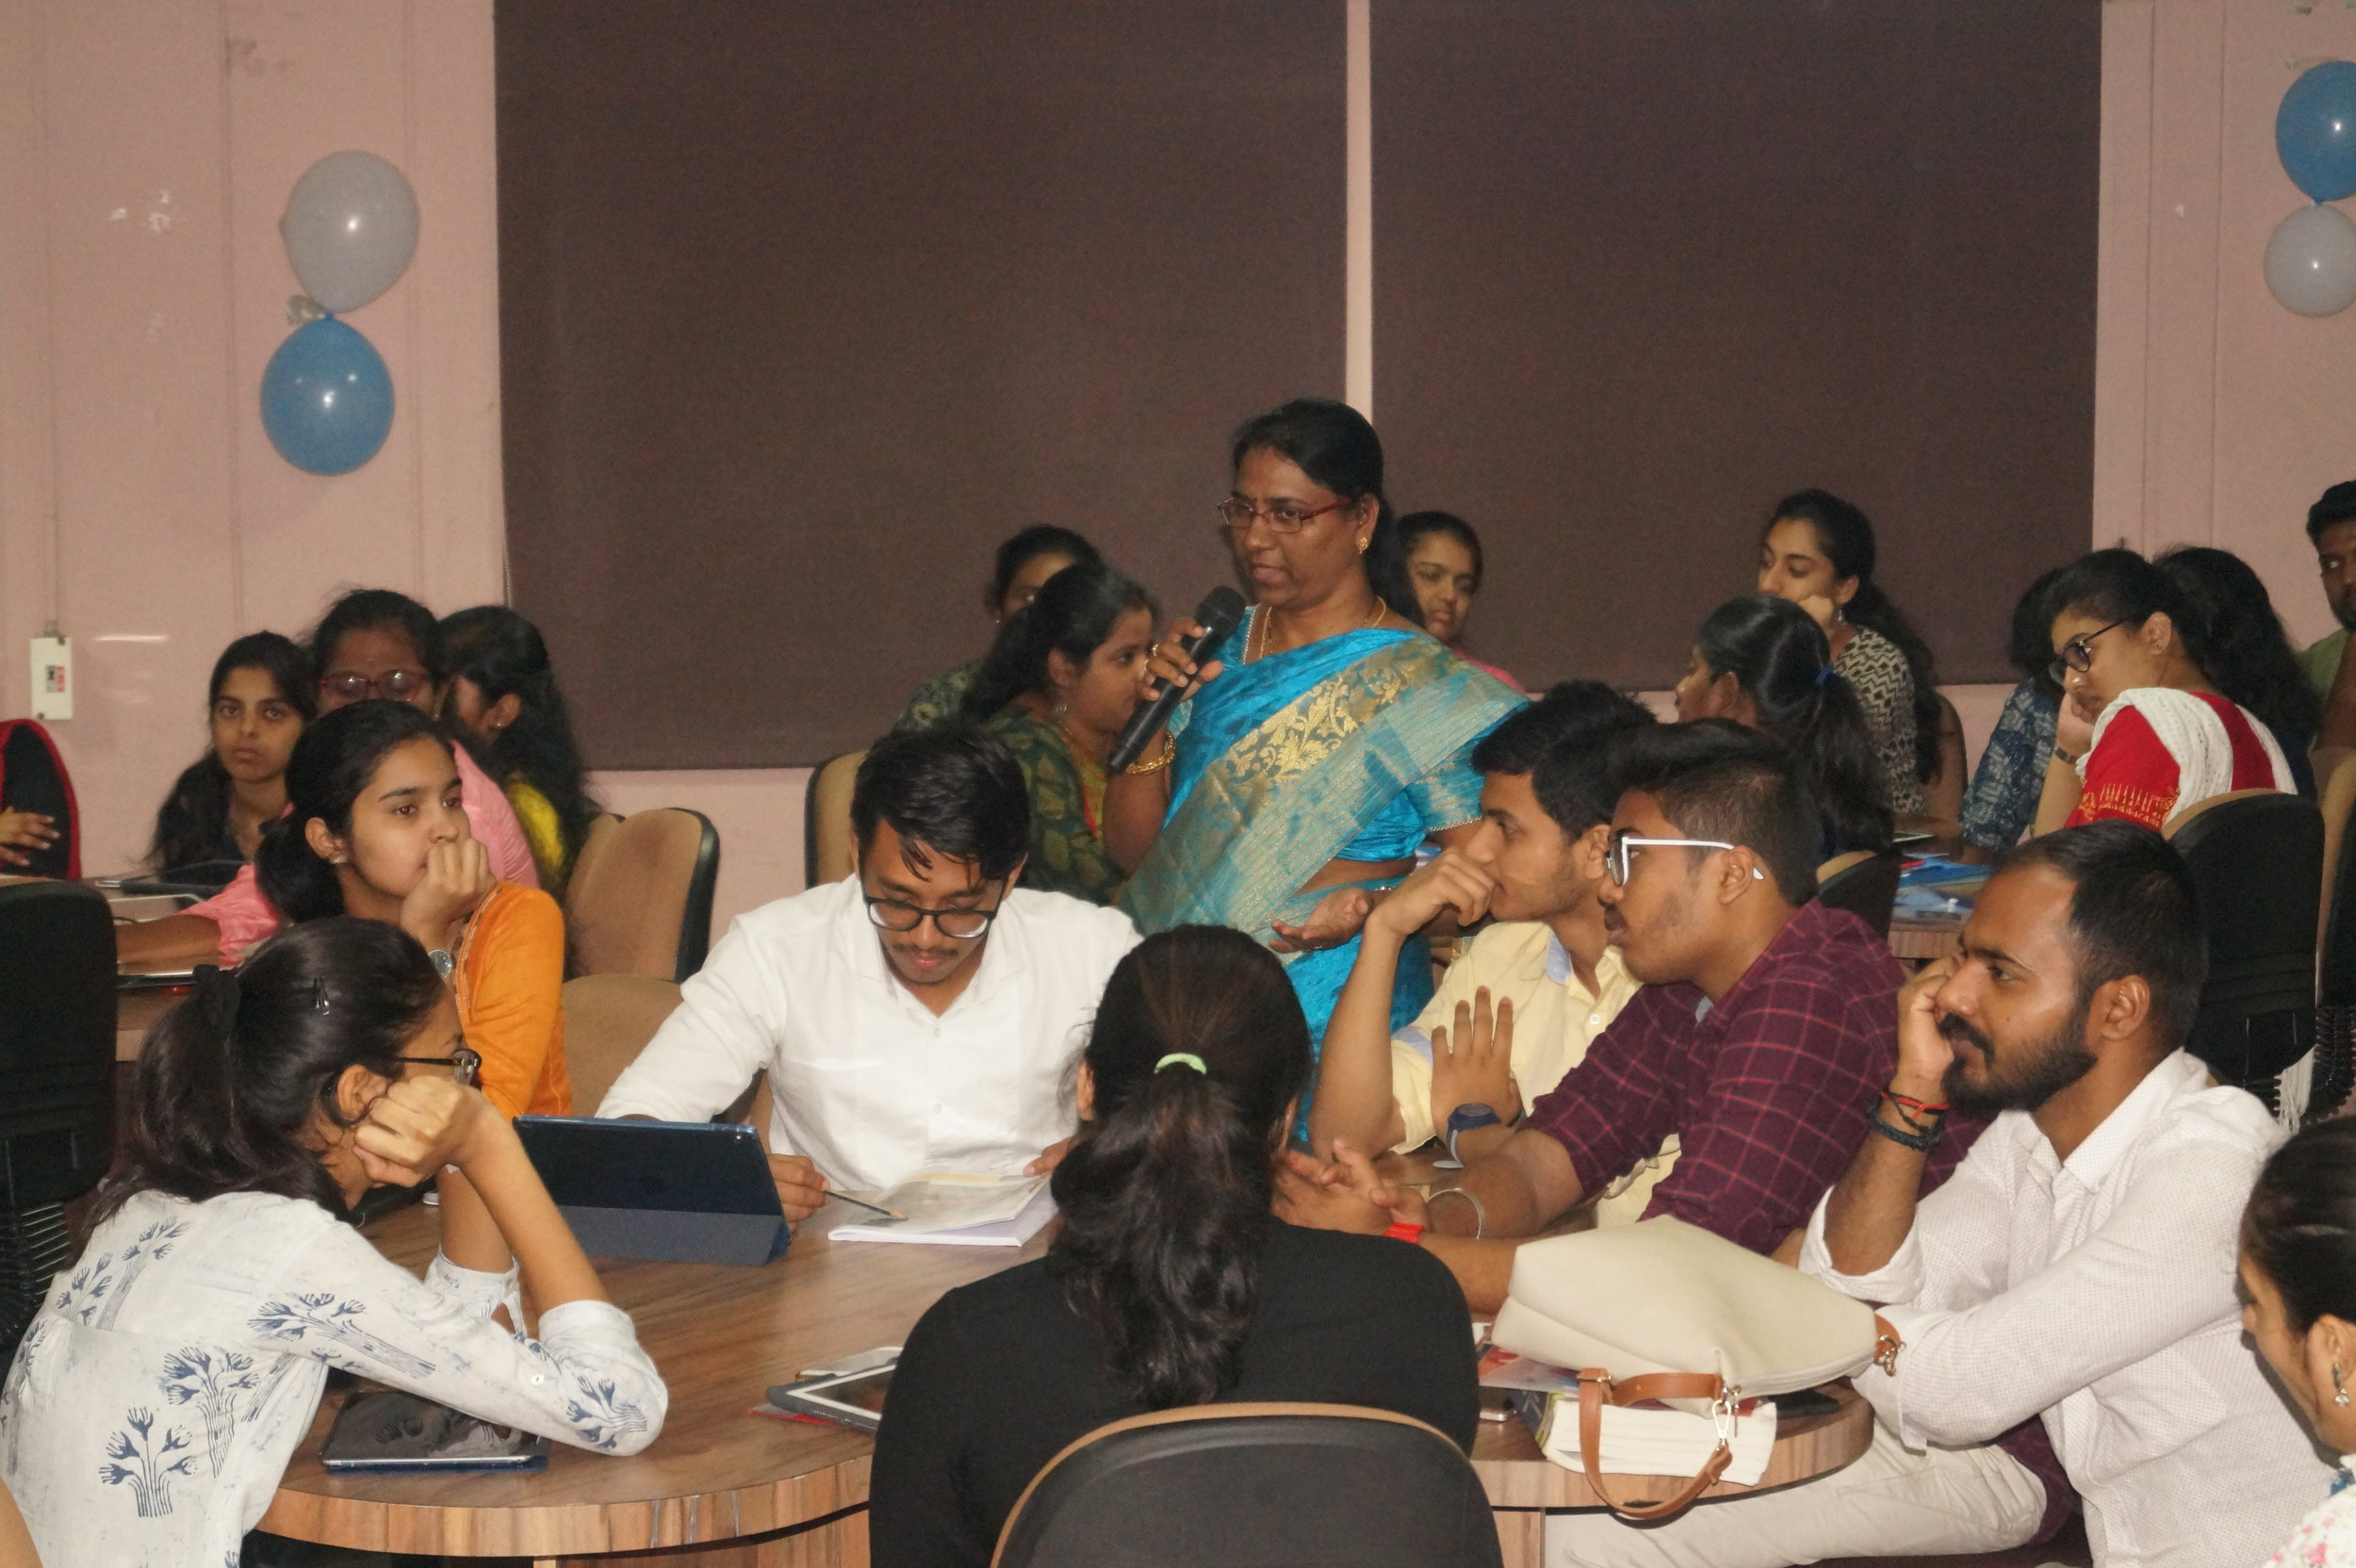 Dr. Sai Shalini in an active interactive session with the participants